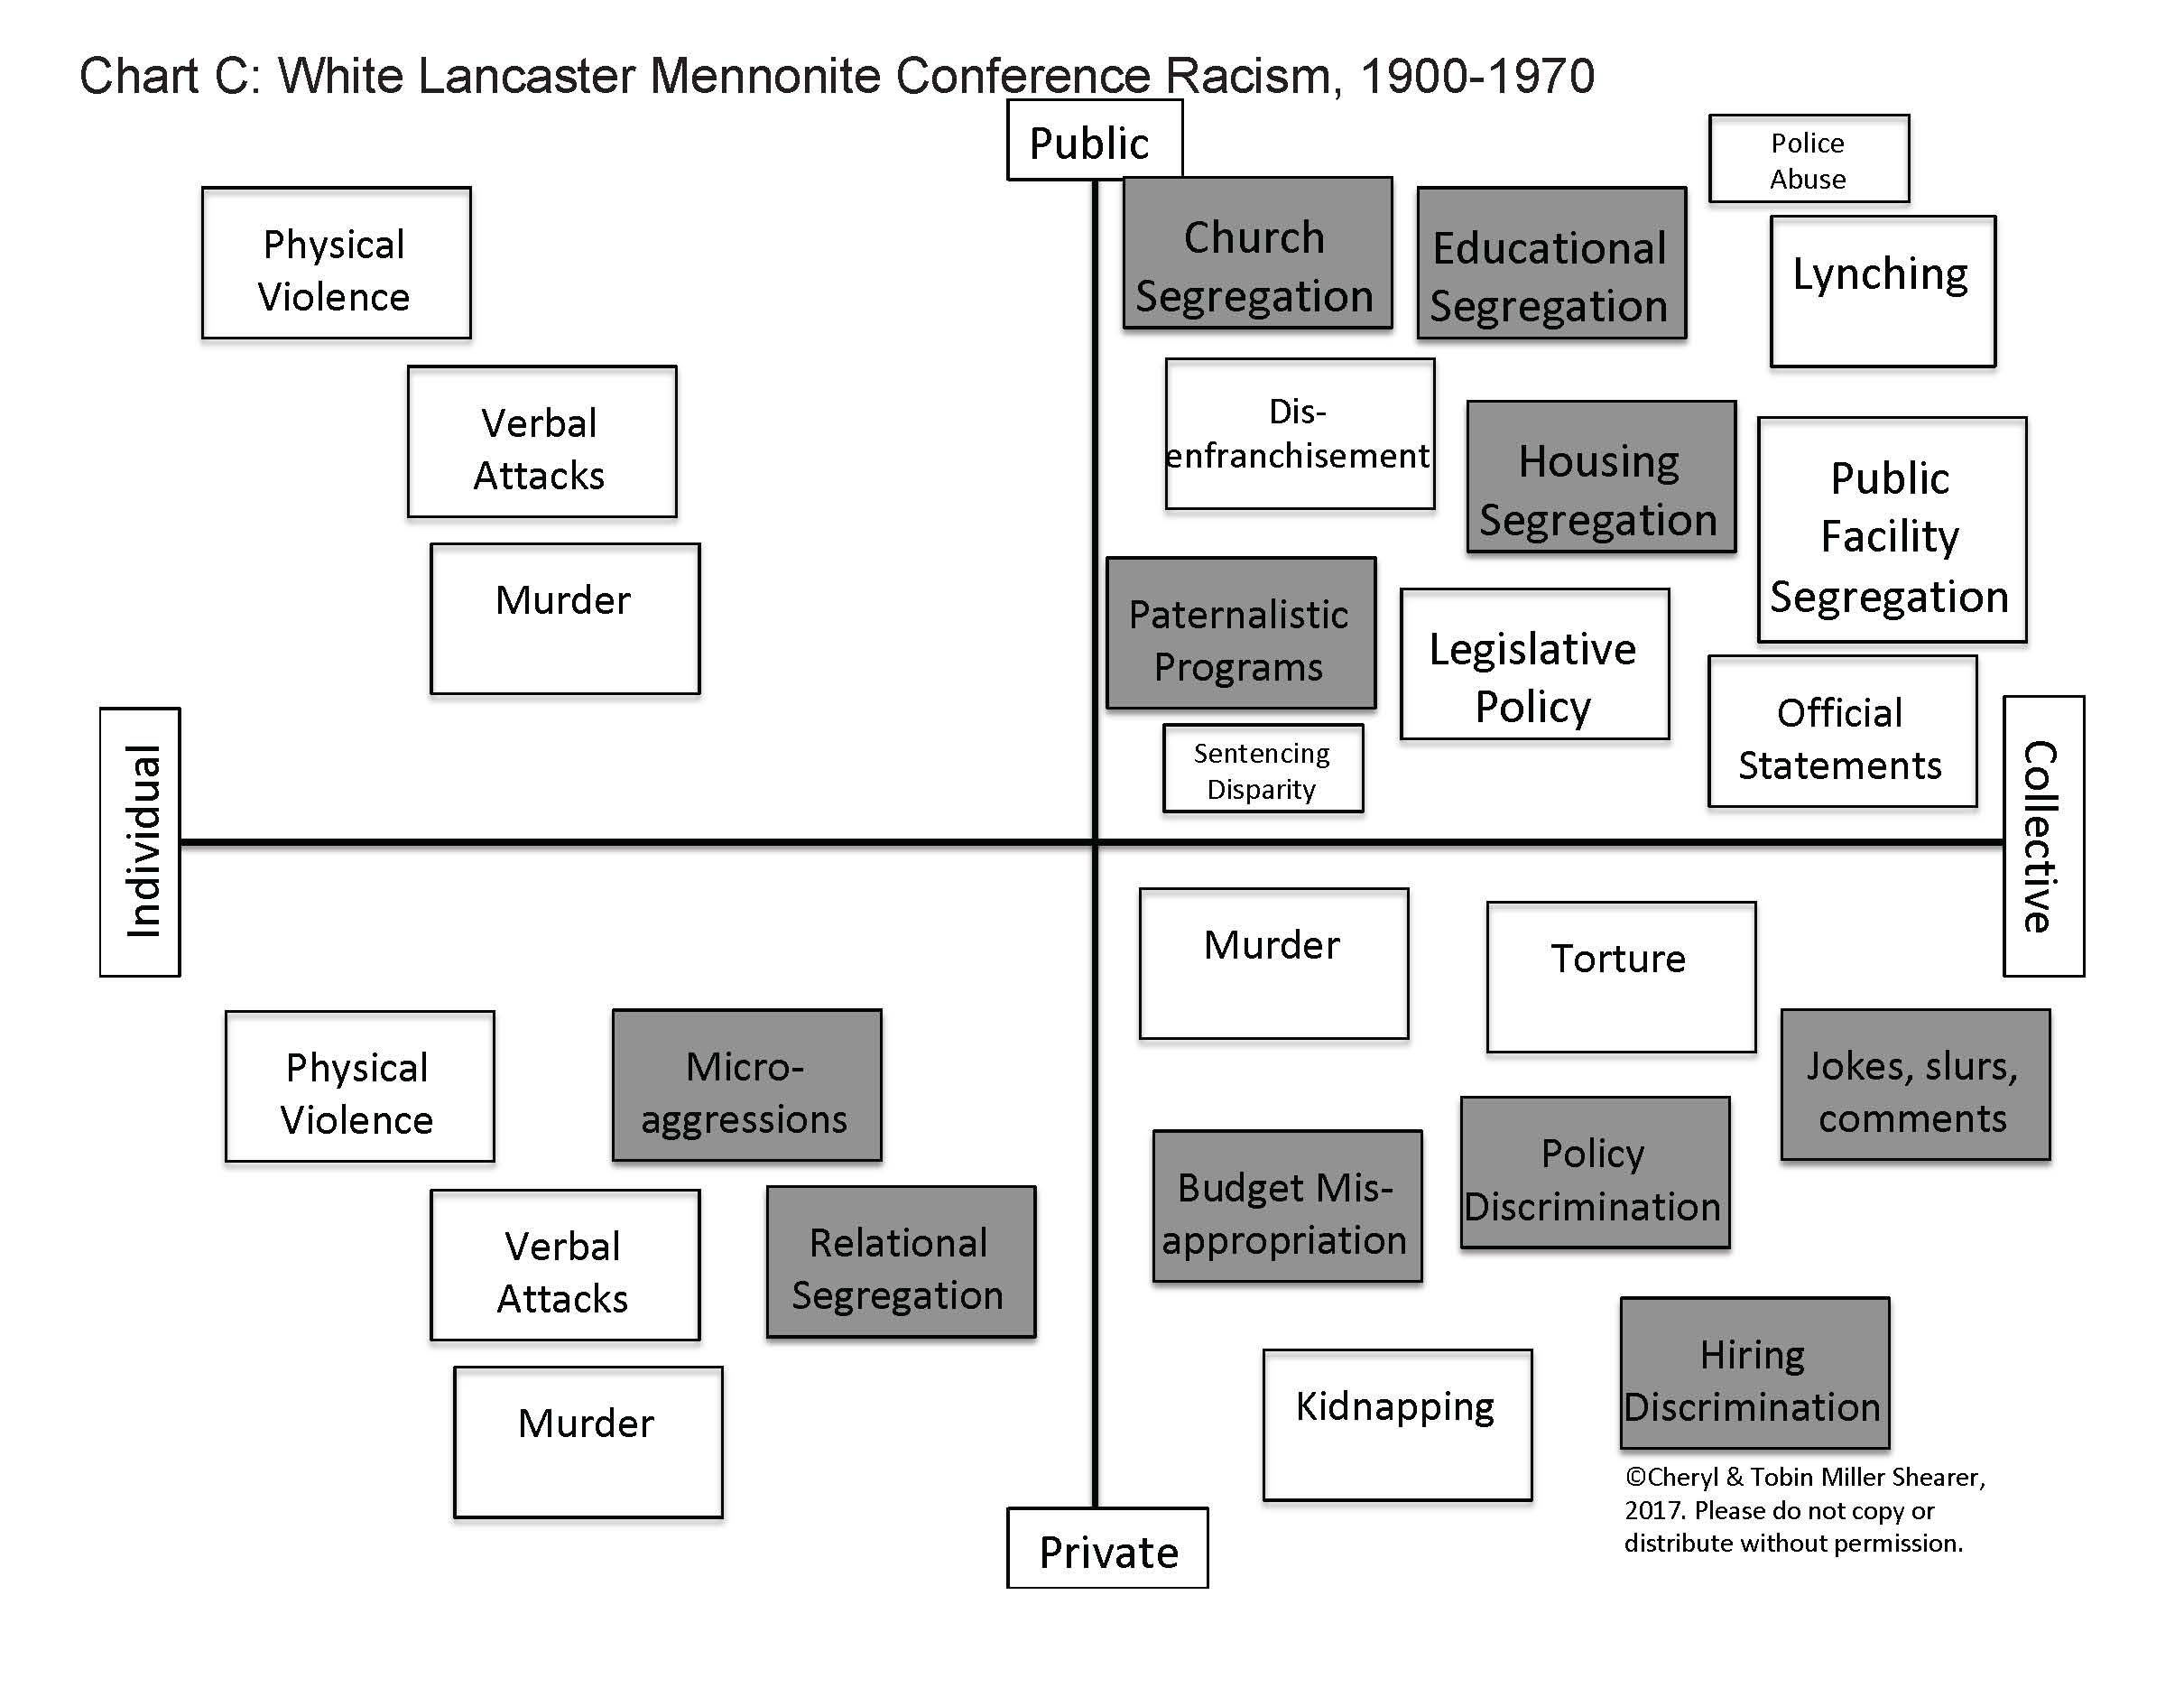 Lancaster Conference response to racism - Chart C